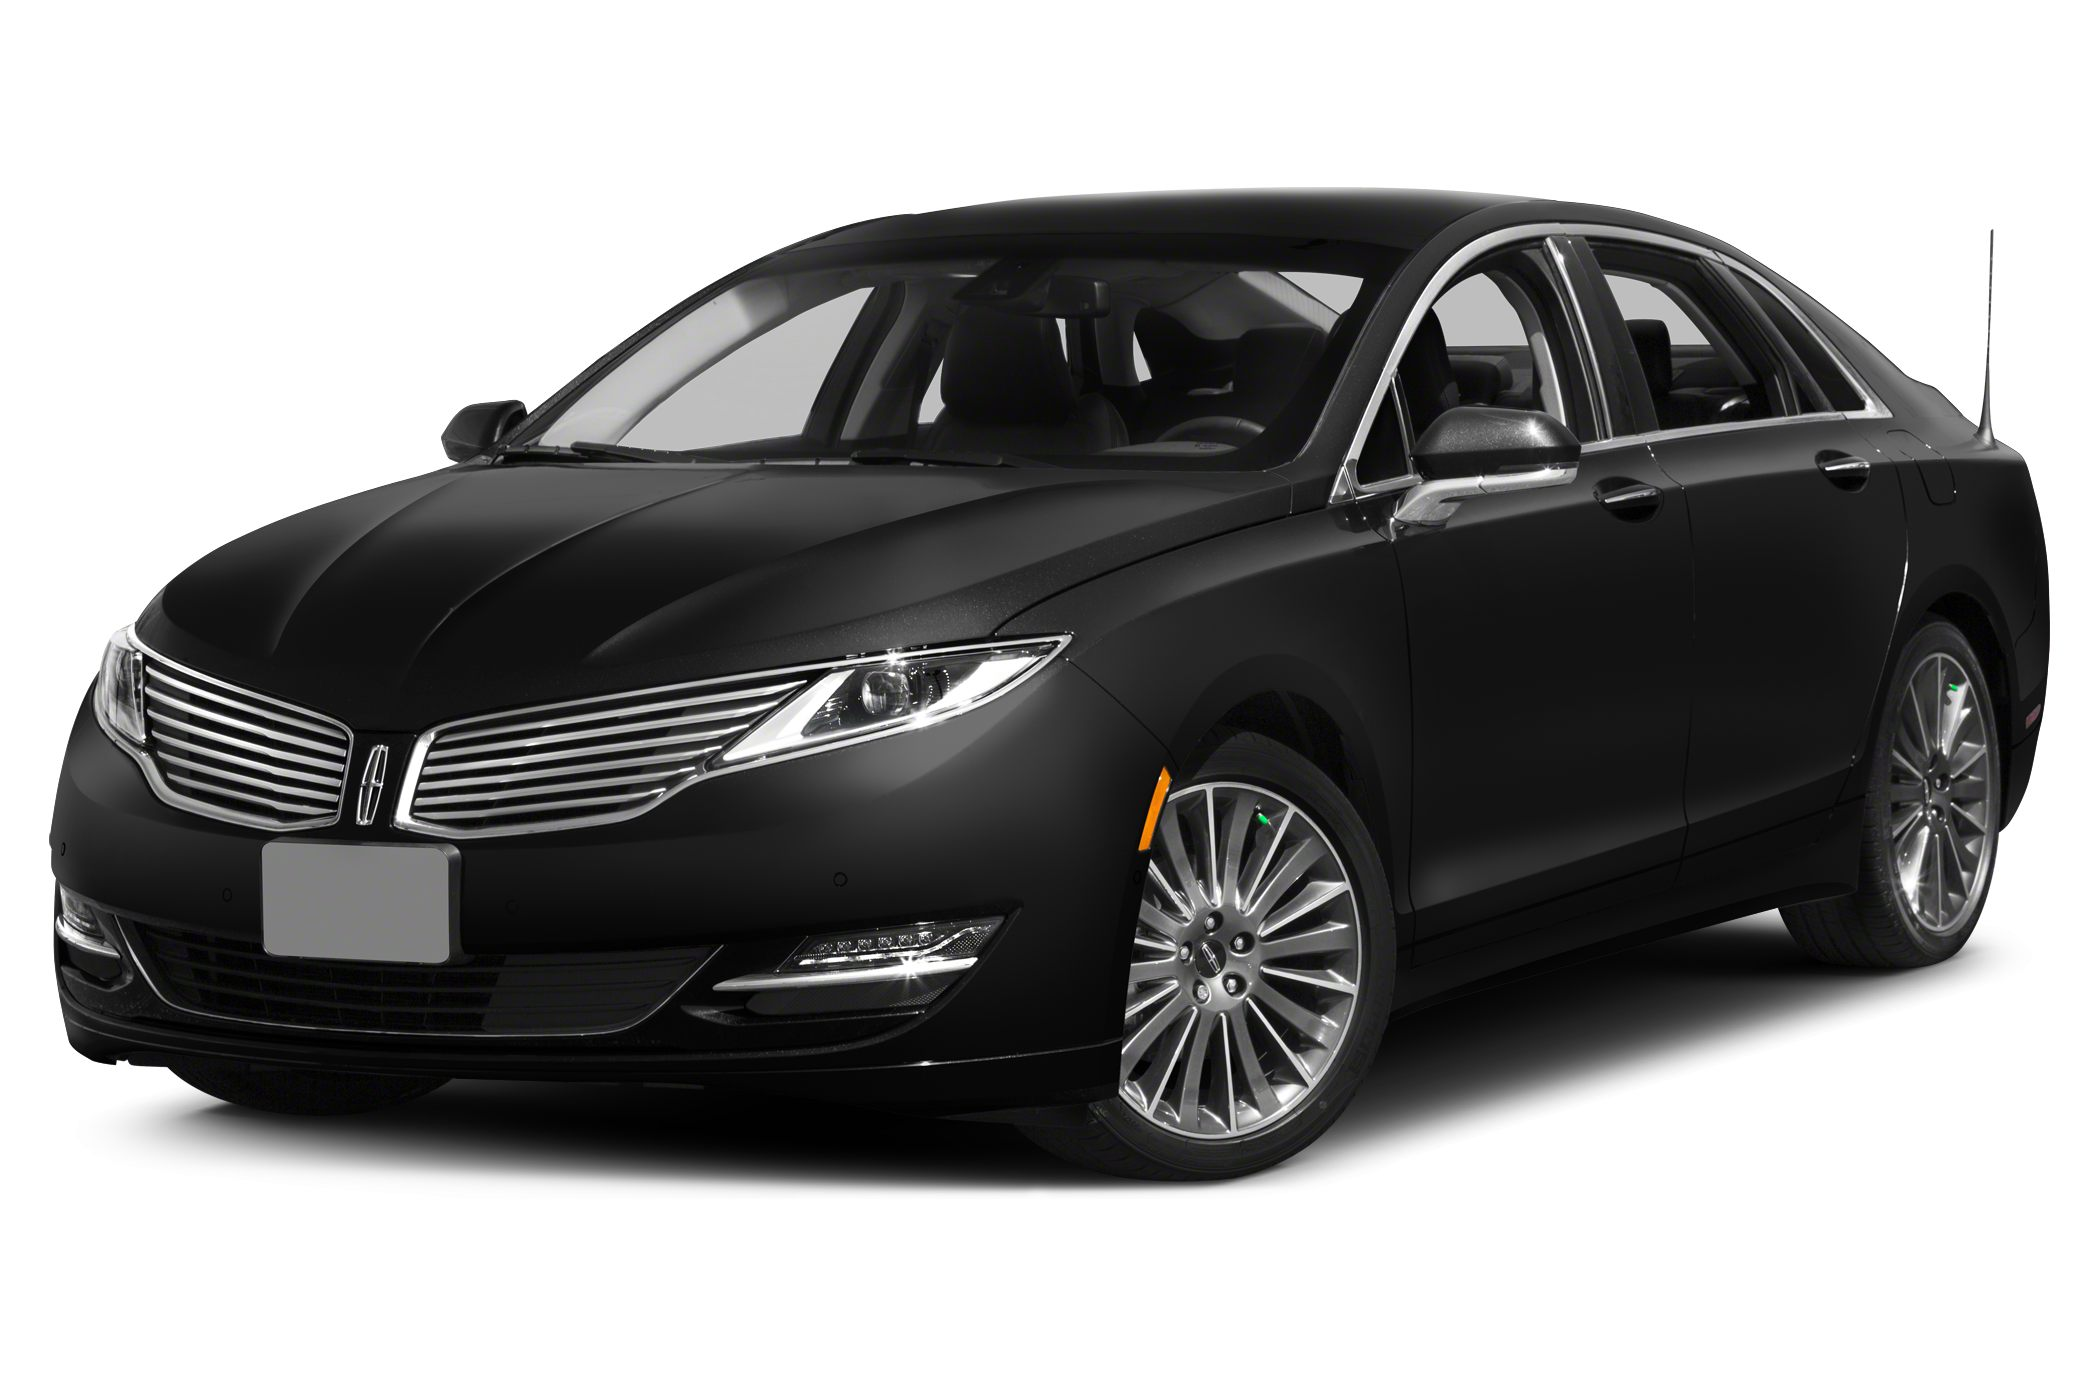 2015 Lincoln MKZ Hybrid Base Sedan for sale in Bonita Springs for $39,925 with 8 miles.